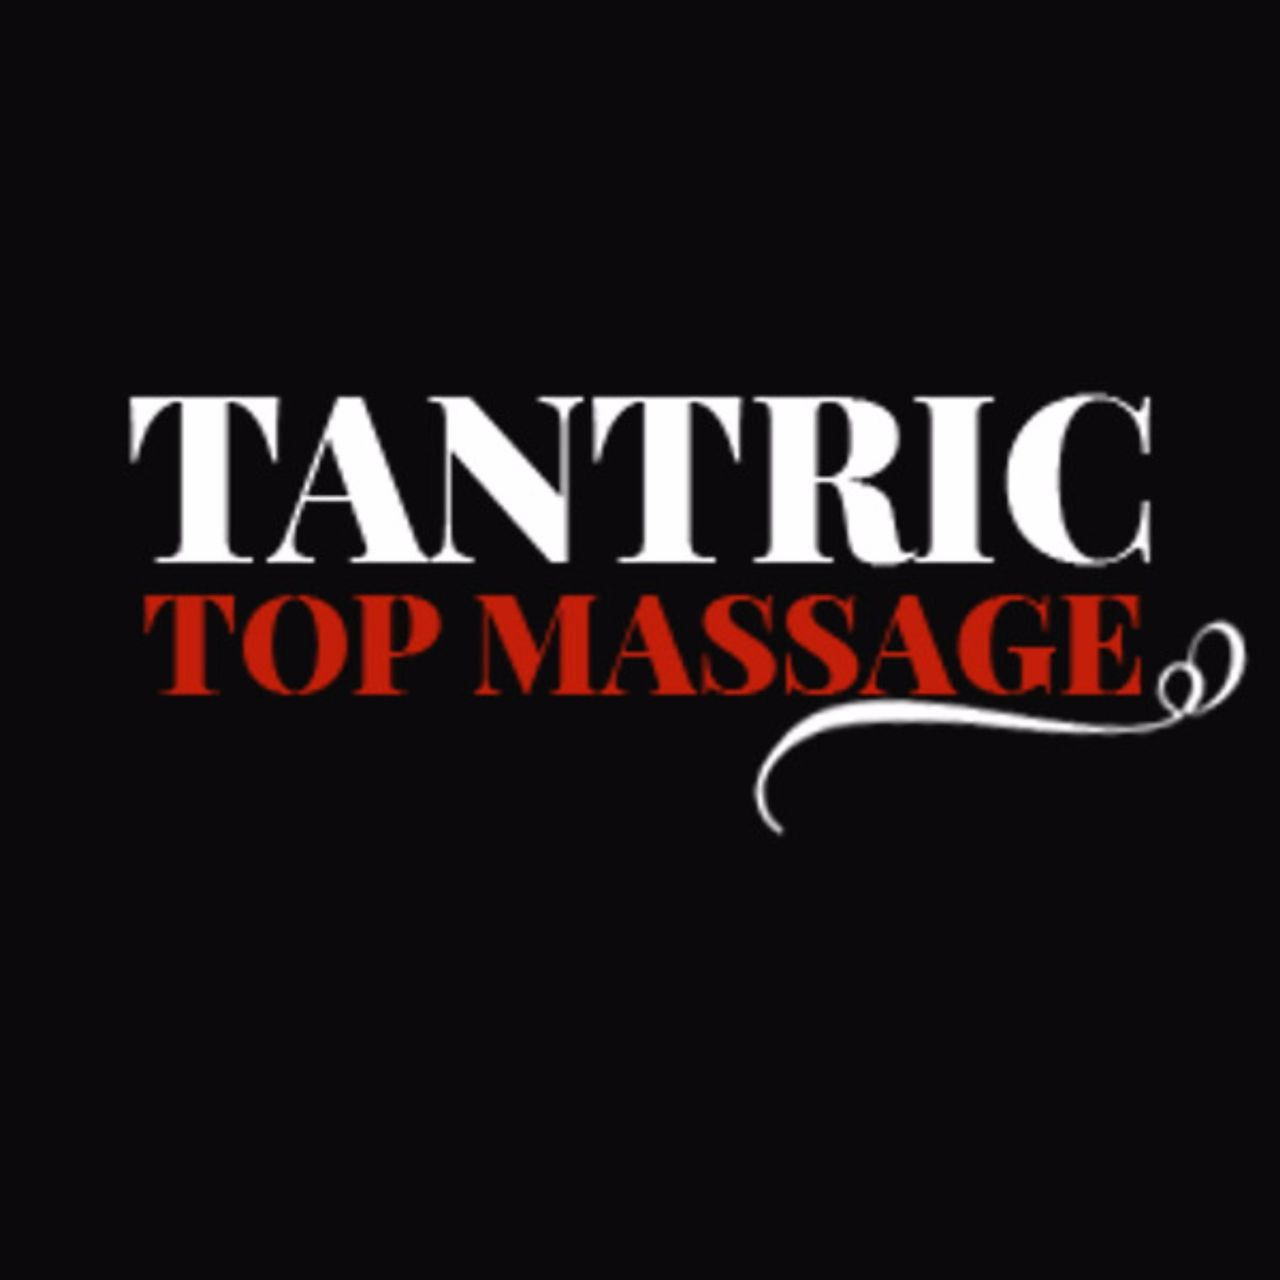 Tantric Top Massage in London